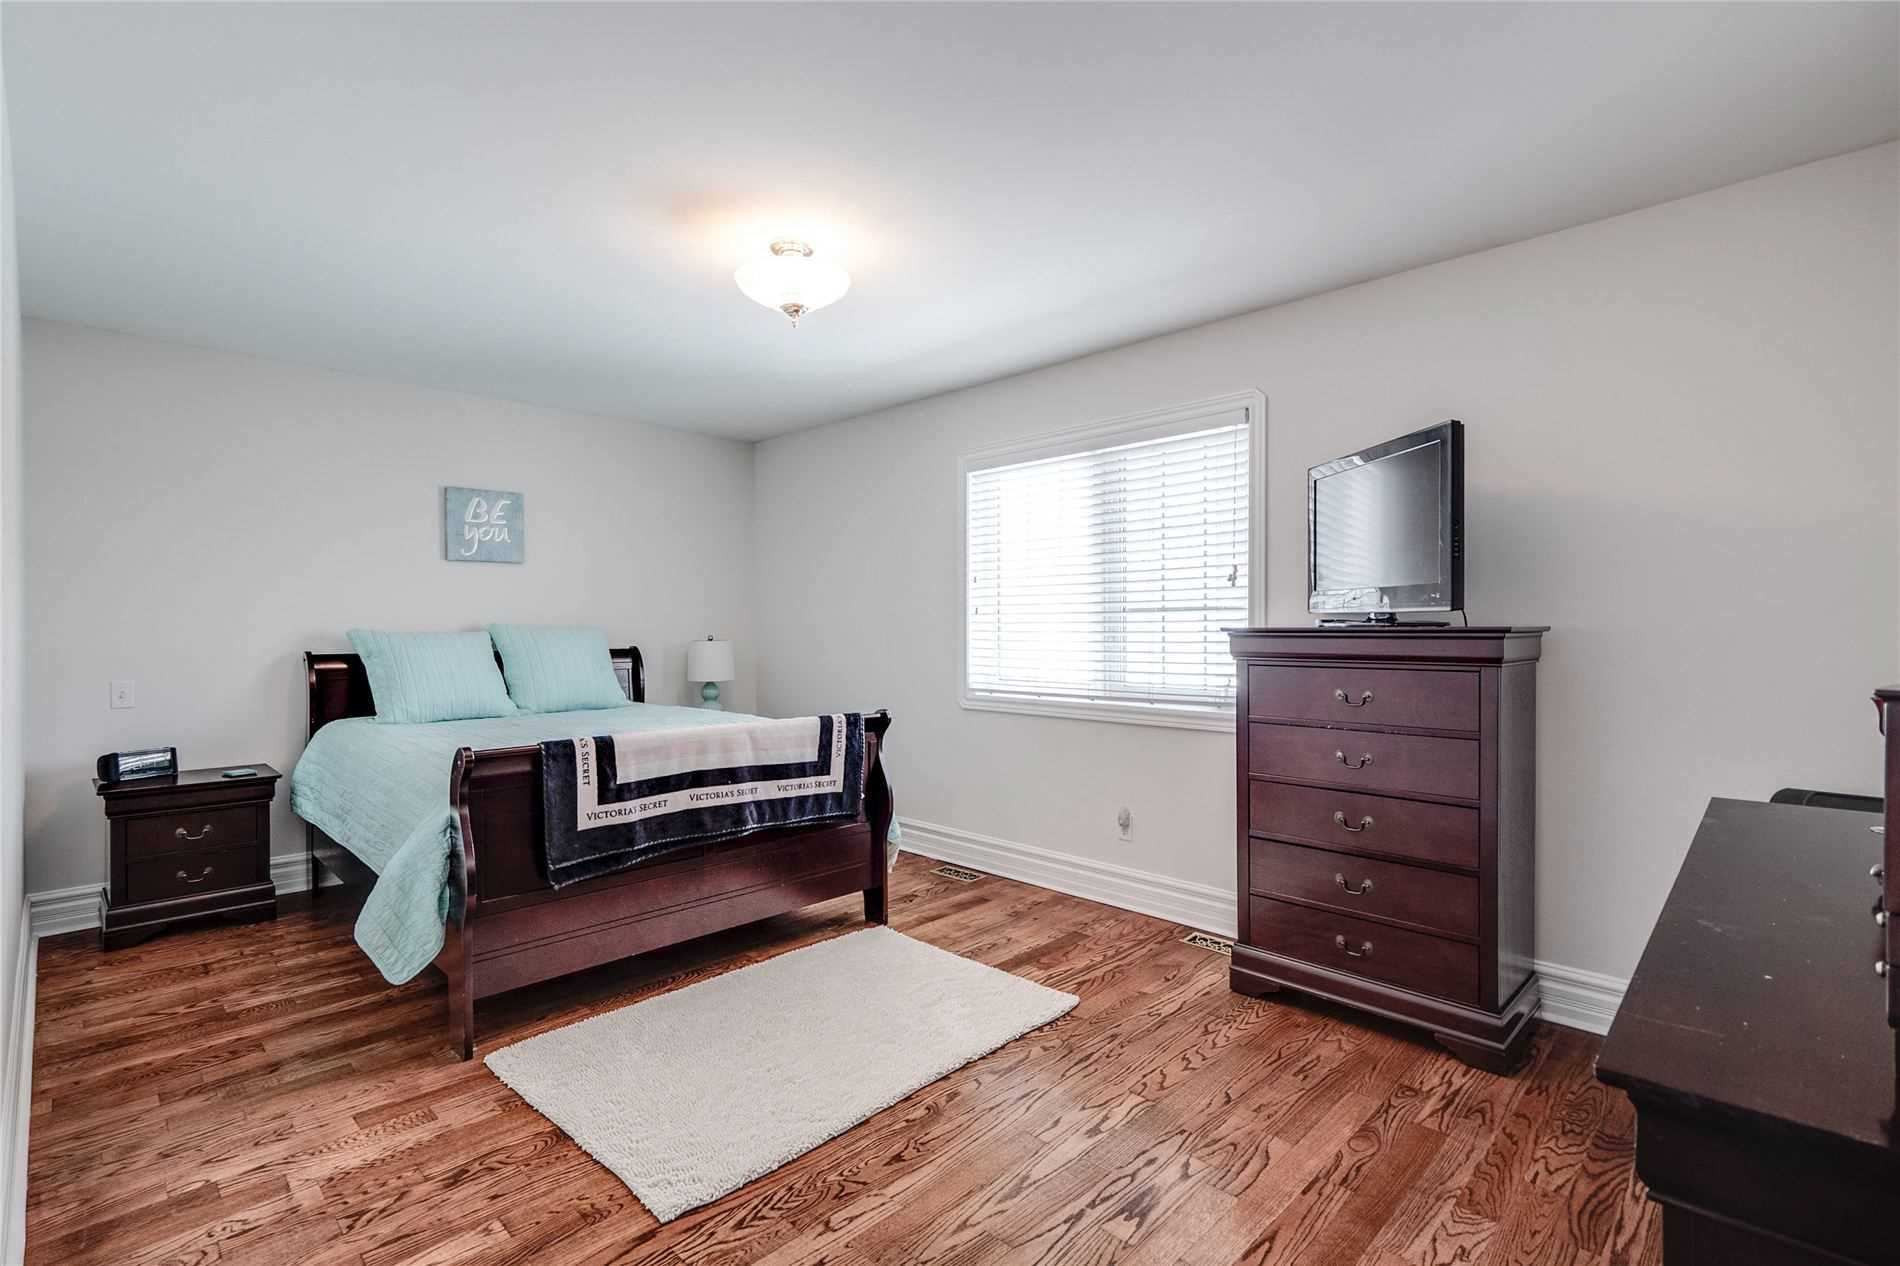 68 Sellers Ave (5)